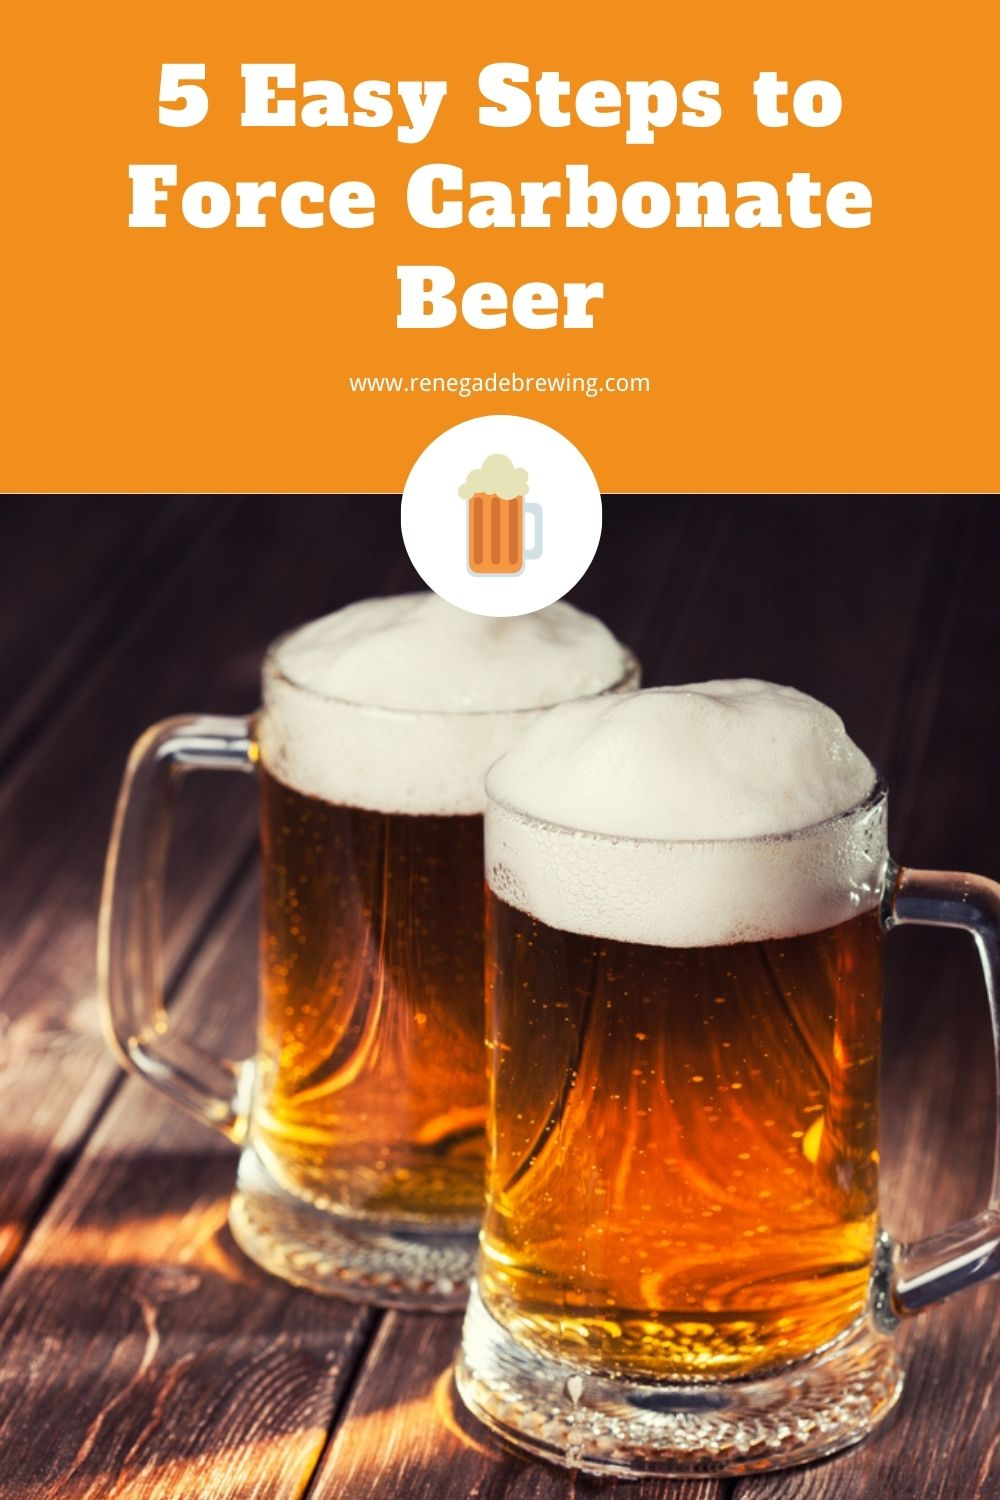 5 Easy Steps to Force Carbonate Beer 2